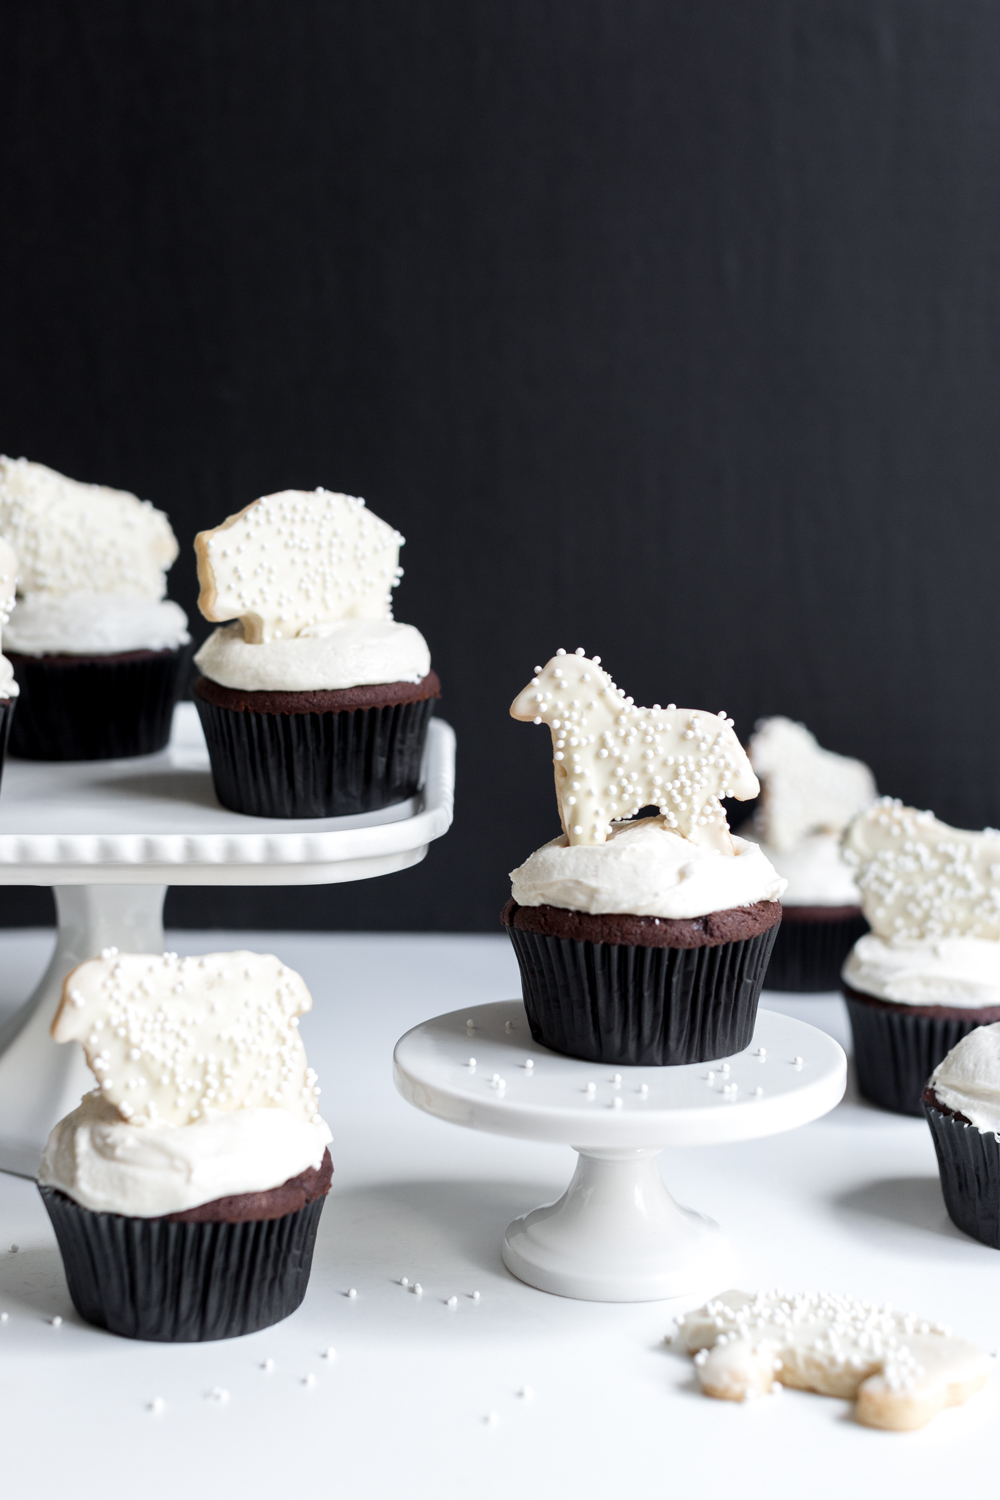 Gangs all here. These Black and White Animal Cookie Cupcakes are almost too dang cute to eat.